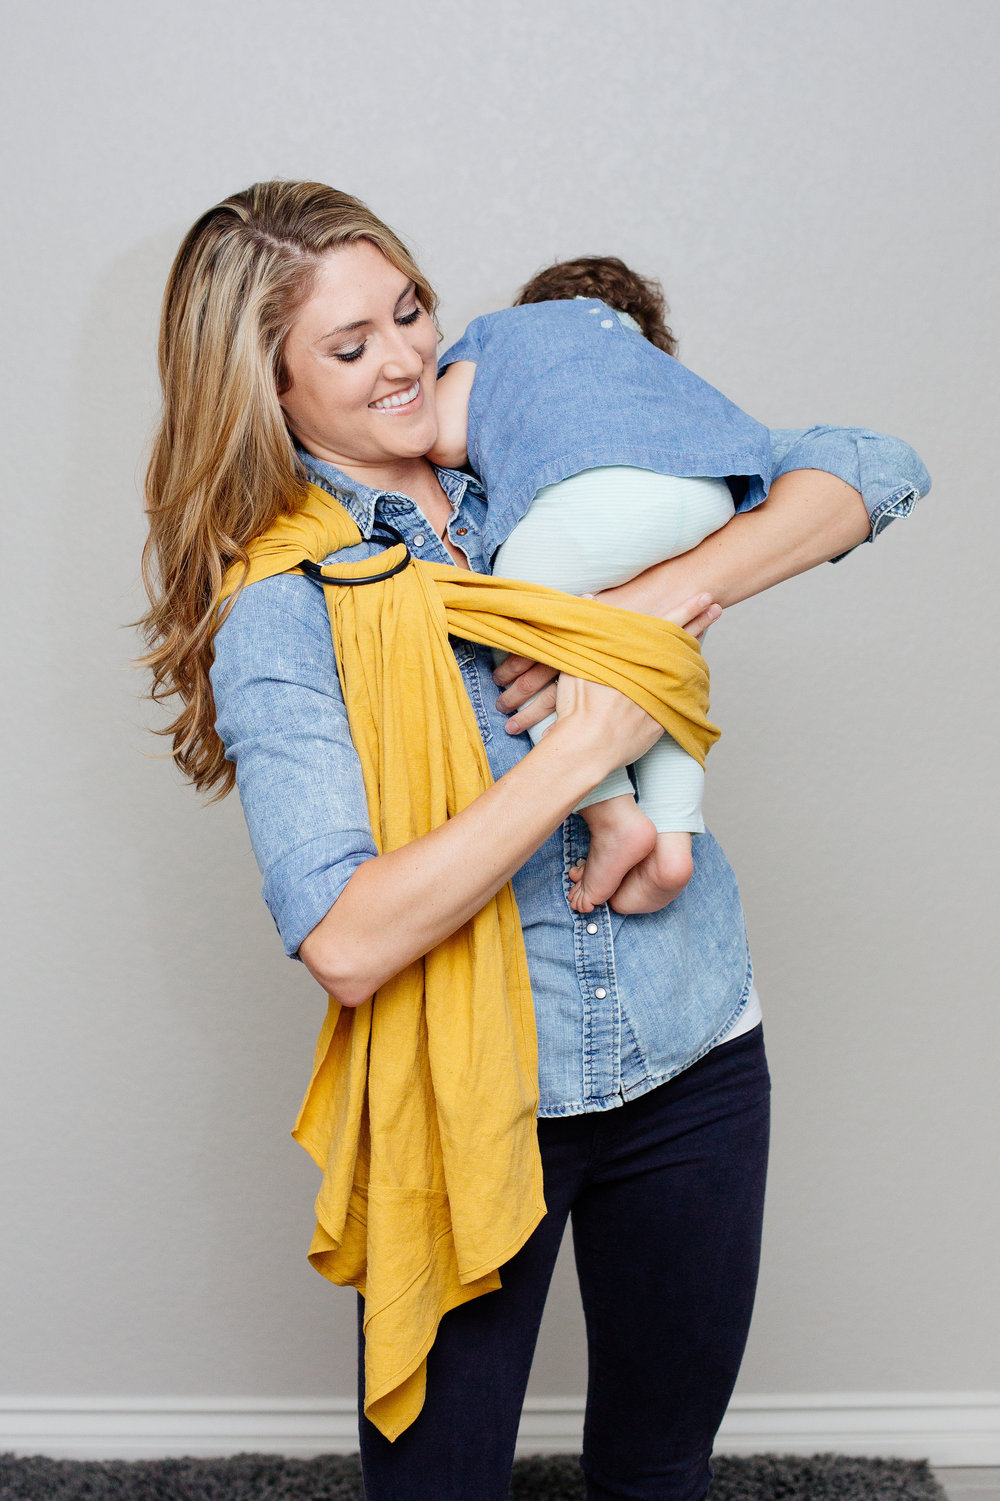 8 Place your baby high on your shoulder as if to burp them. Holding them with one hand, bring your other hand under the fabric loop to pull their legs through.